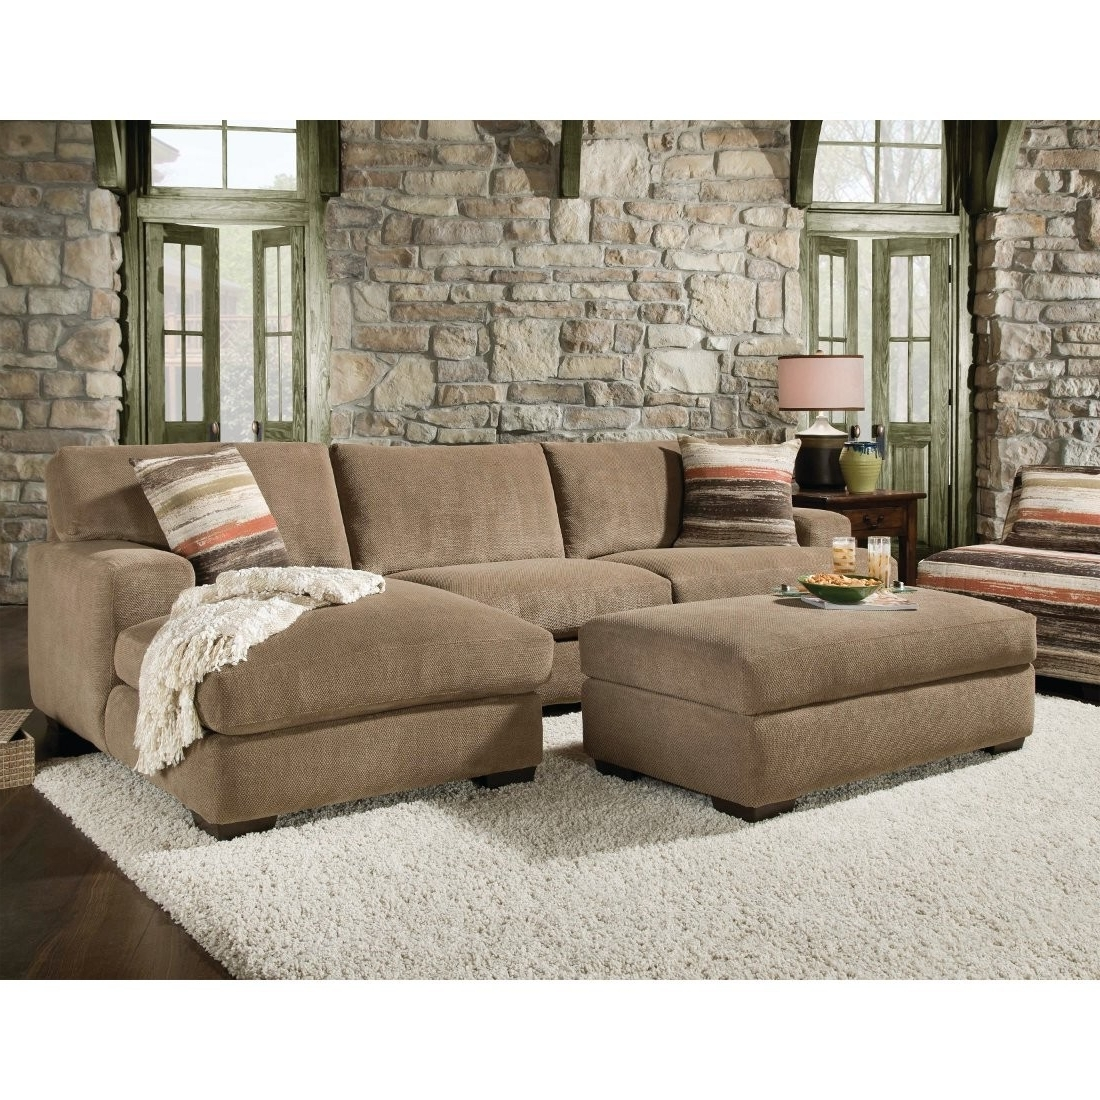 Well Known Sofa Sectionals With Chaise Inside 72 Inch Sofa Sectional Sleeper Sofa Ikea Small Sectionals For (View 14 of 15)